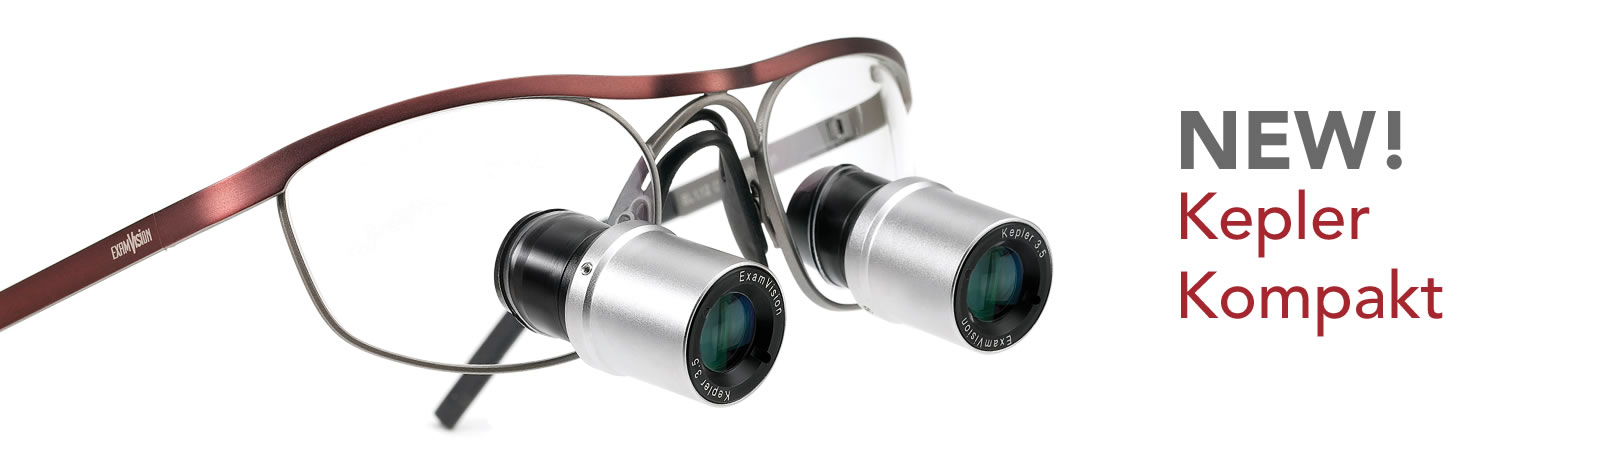 lightweight-higher-magnification-loupes